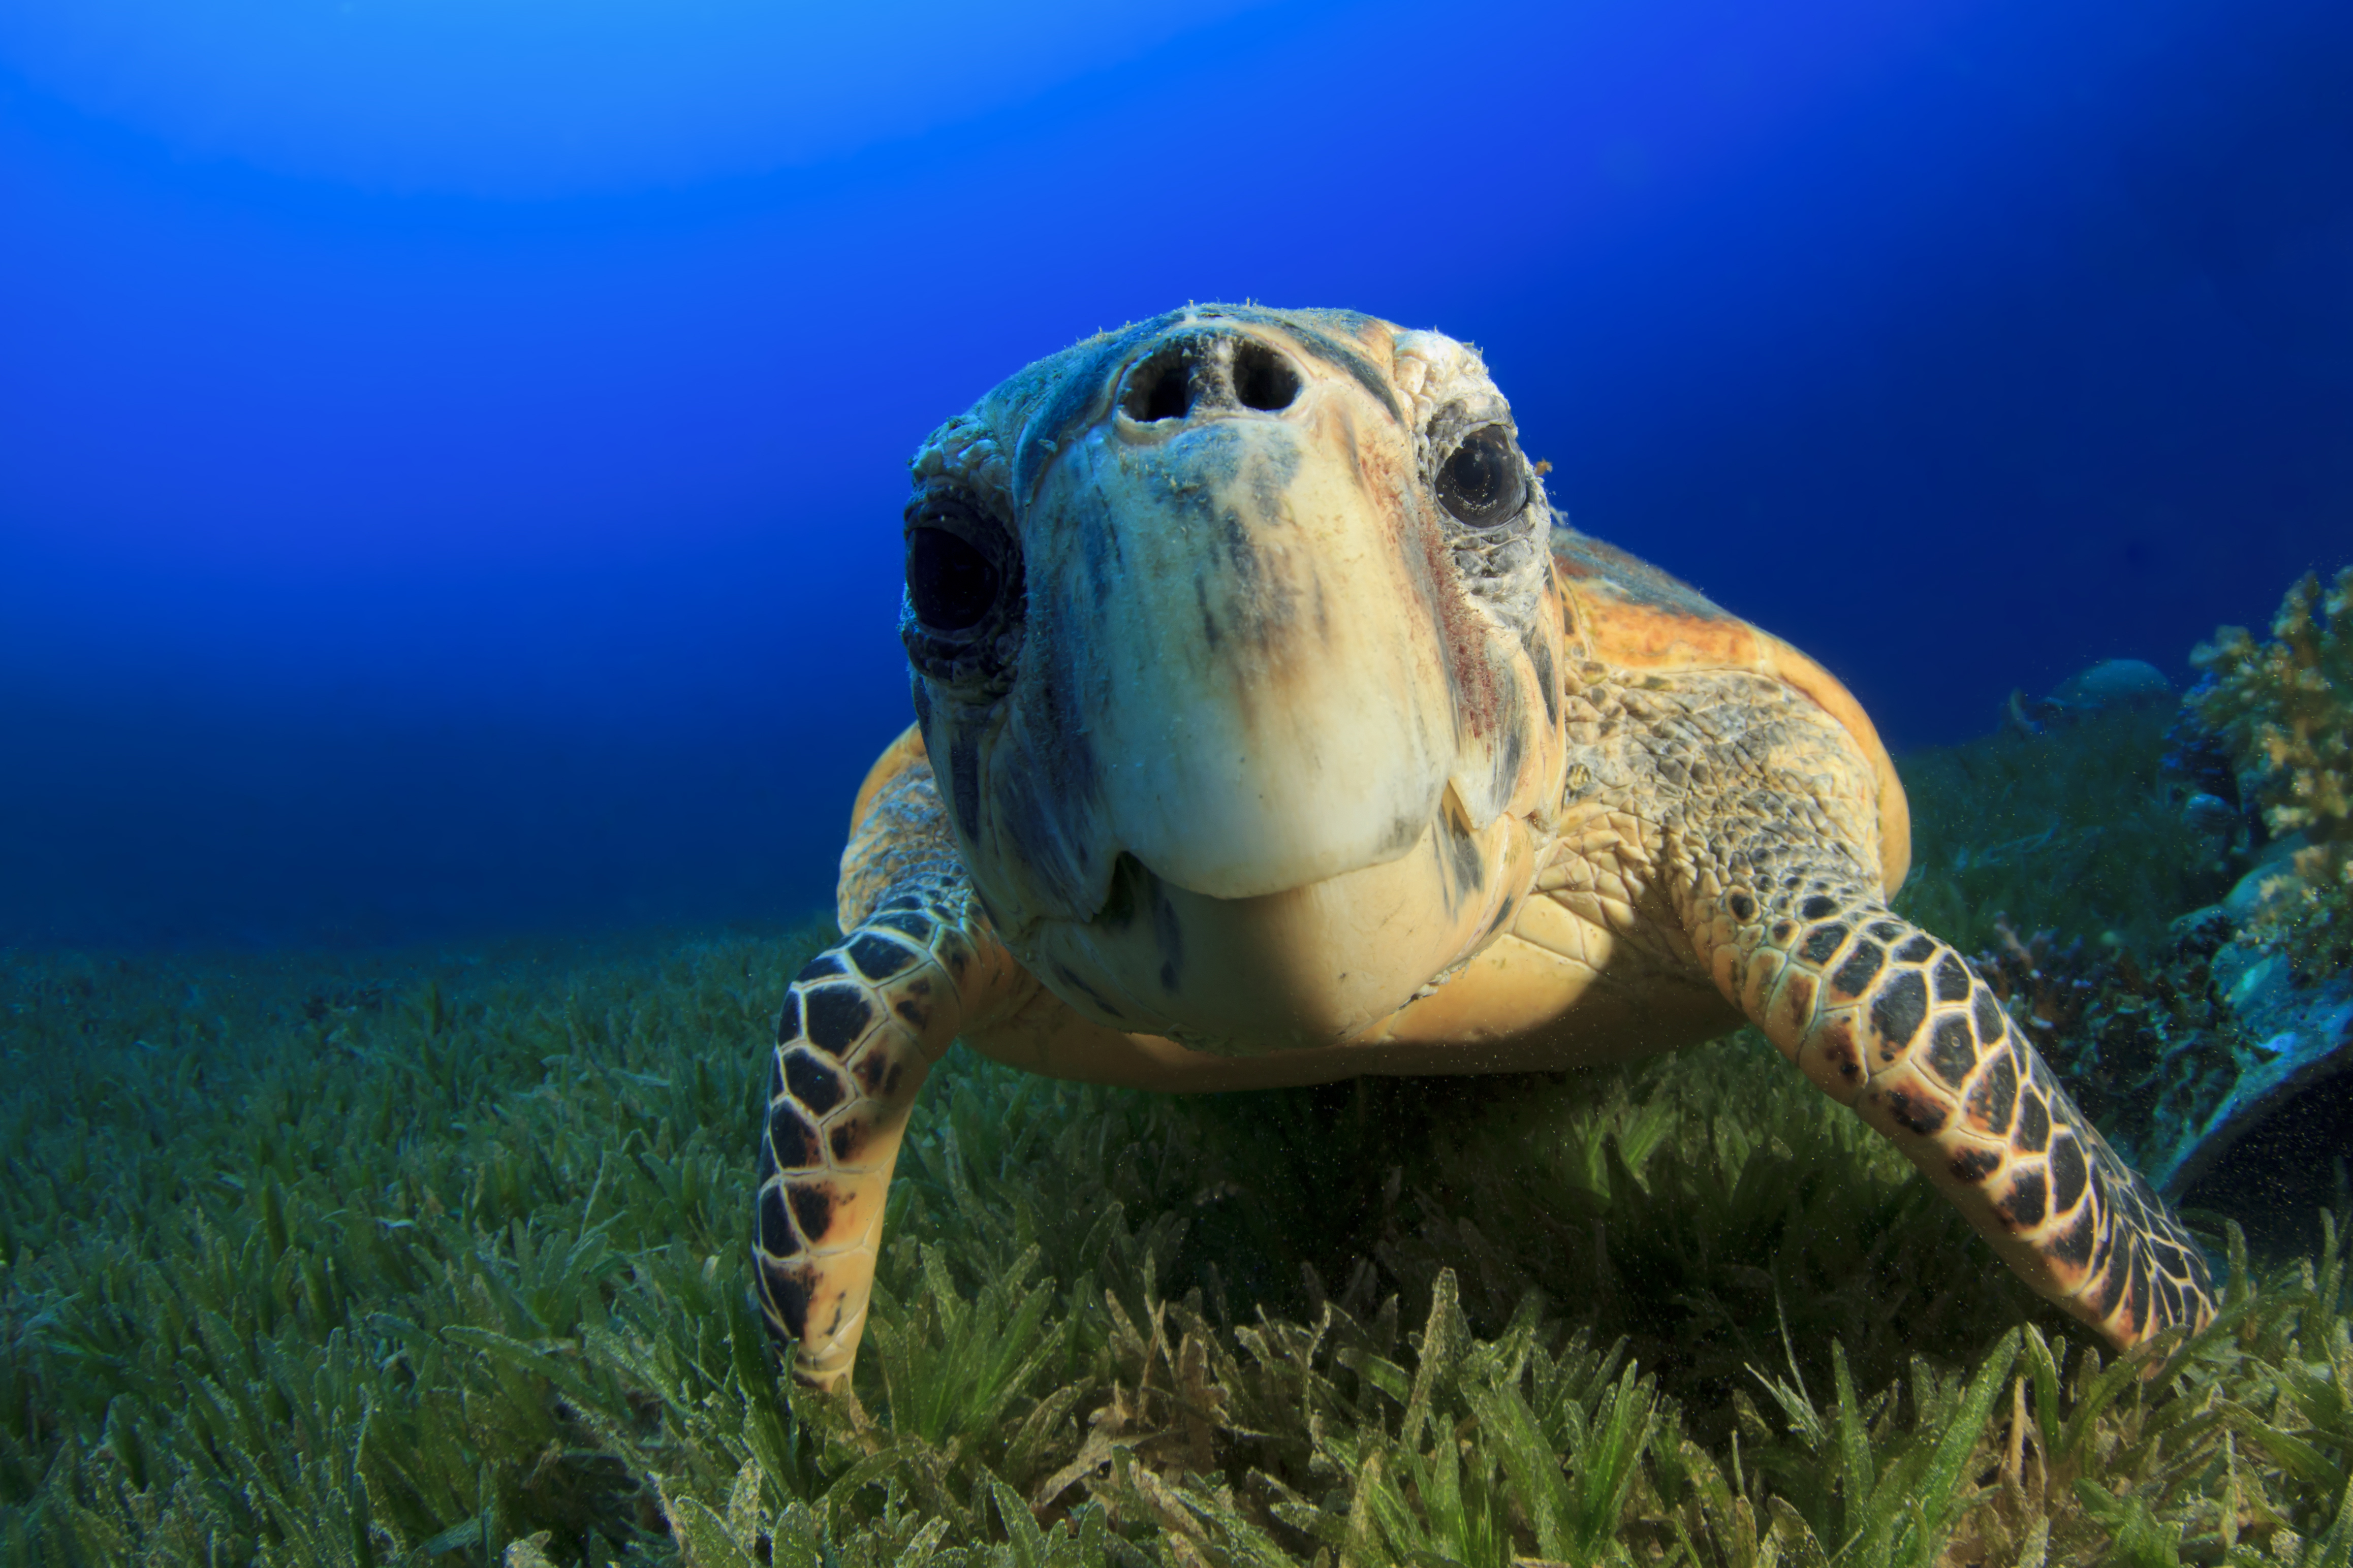 Swimming with Sea Turtles Cruise Excursion